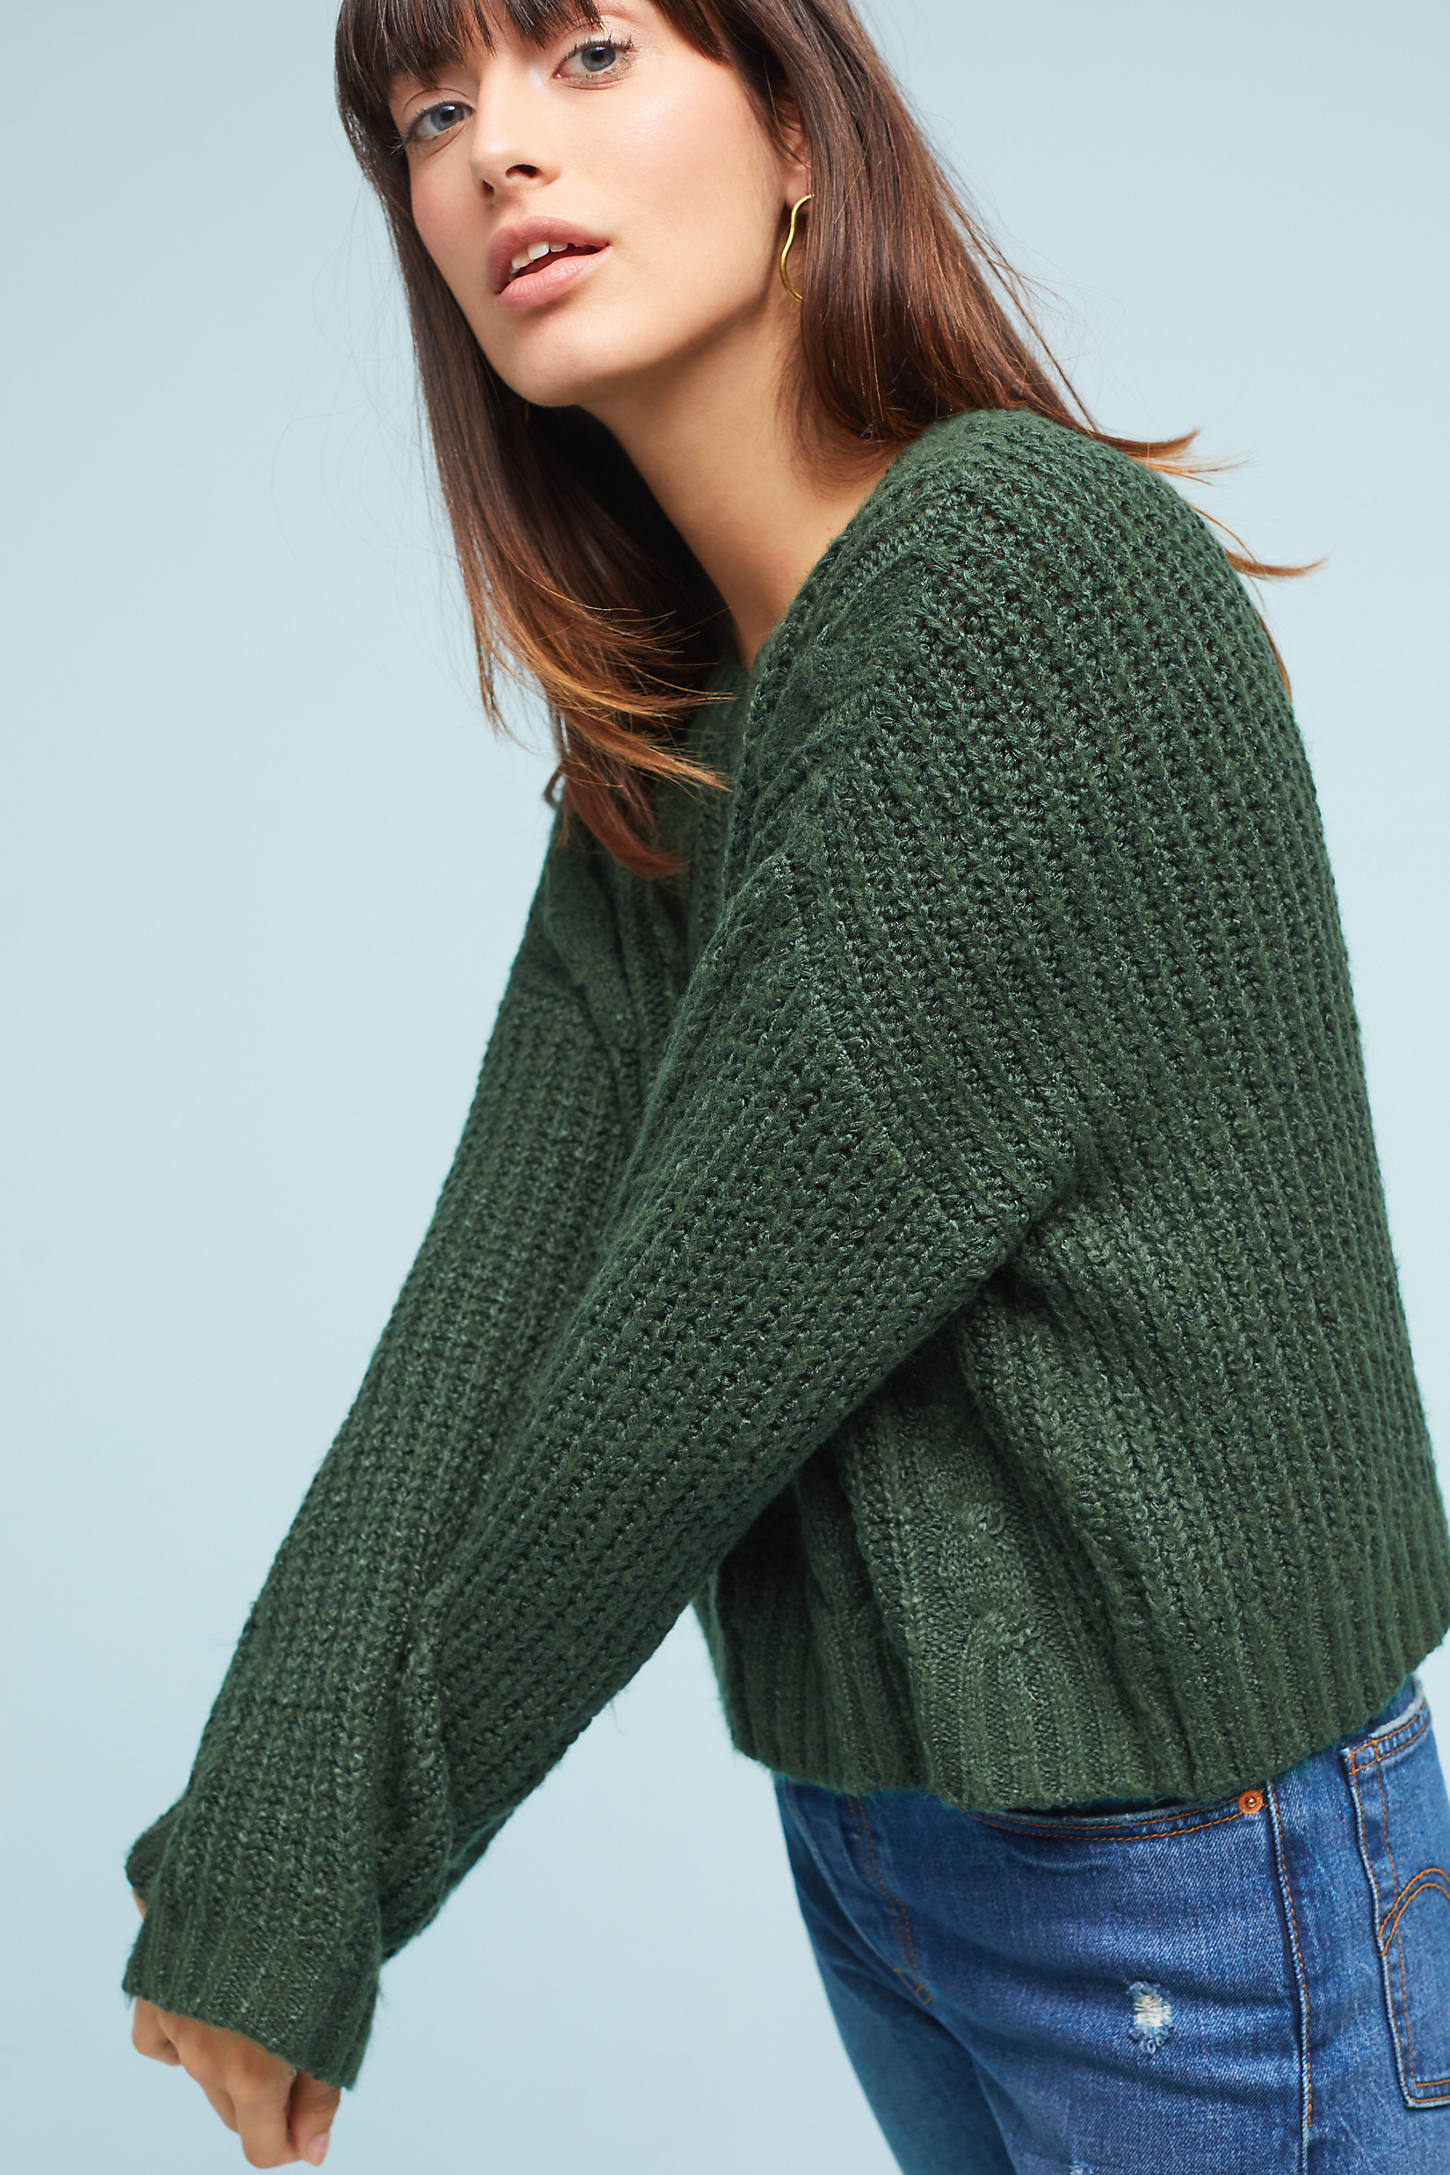 Cabled Scoop Neck Pullover